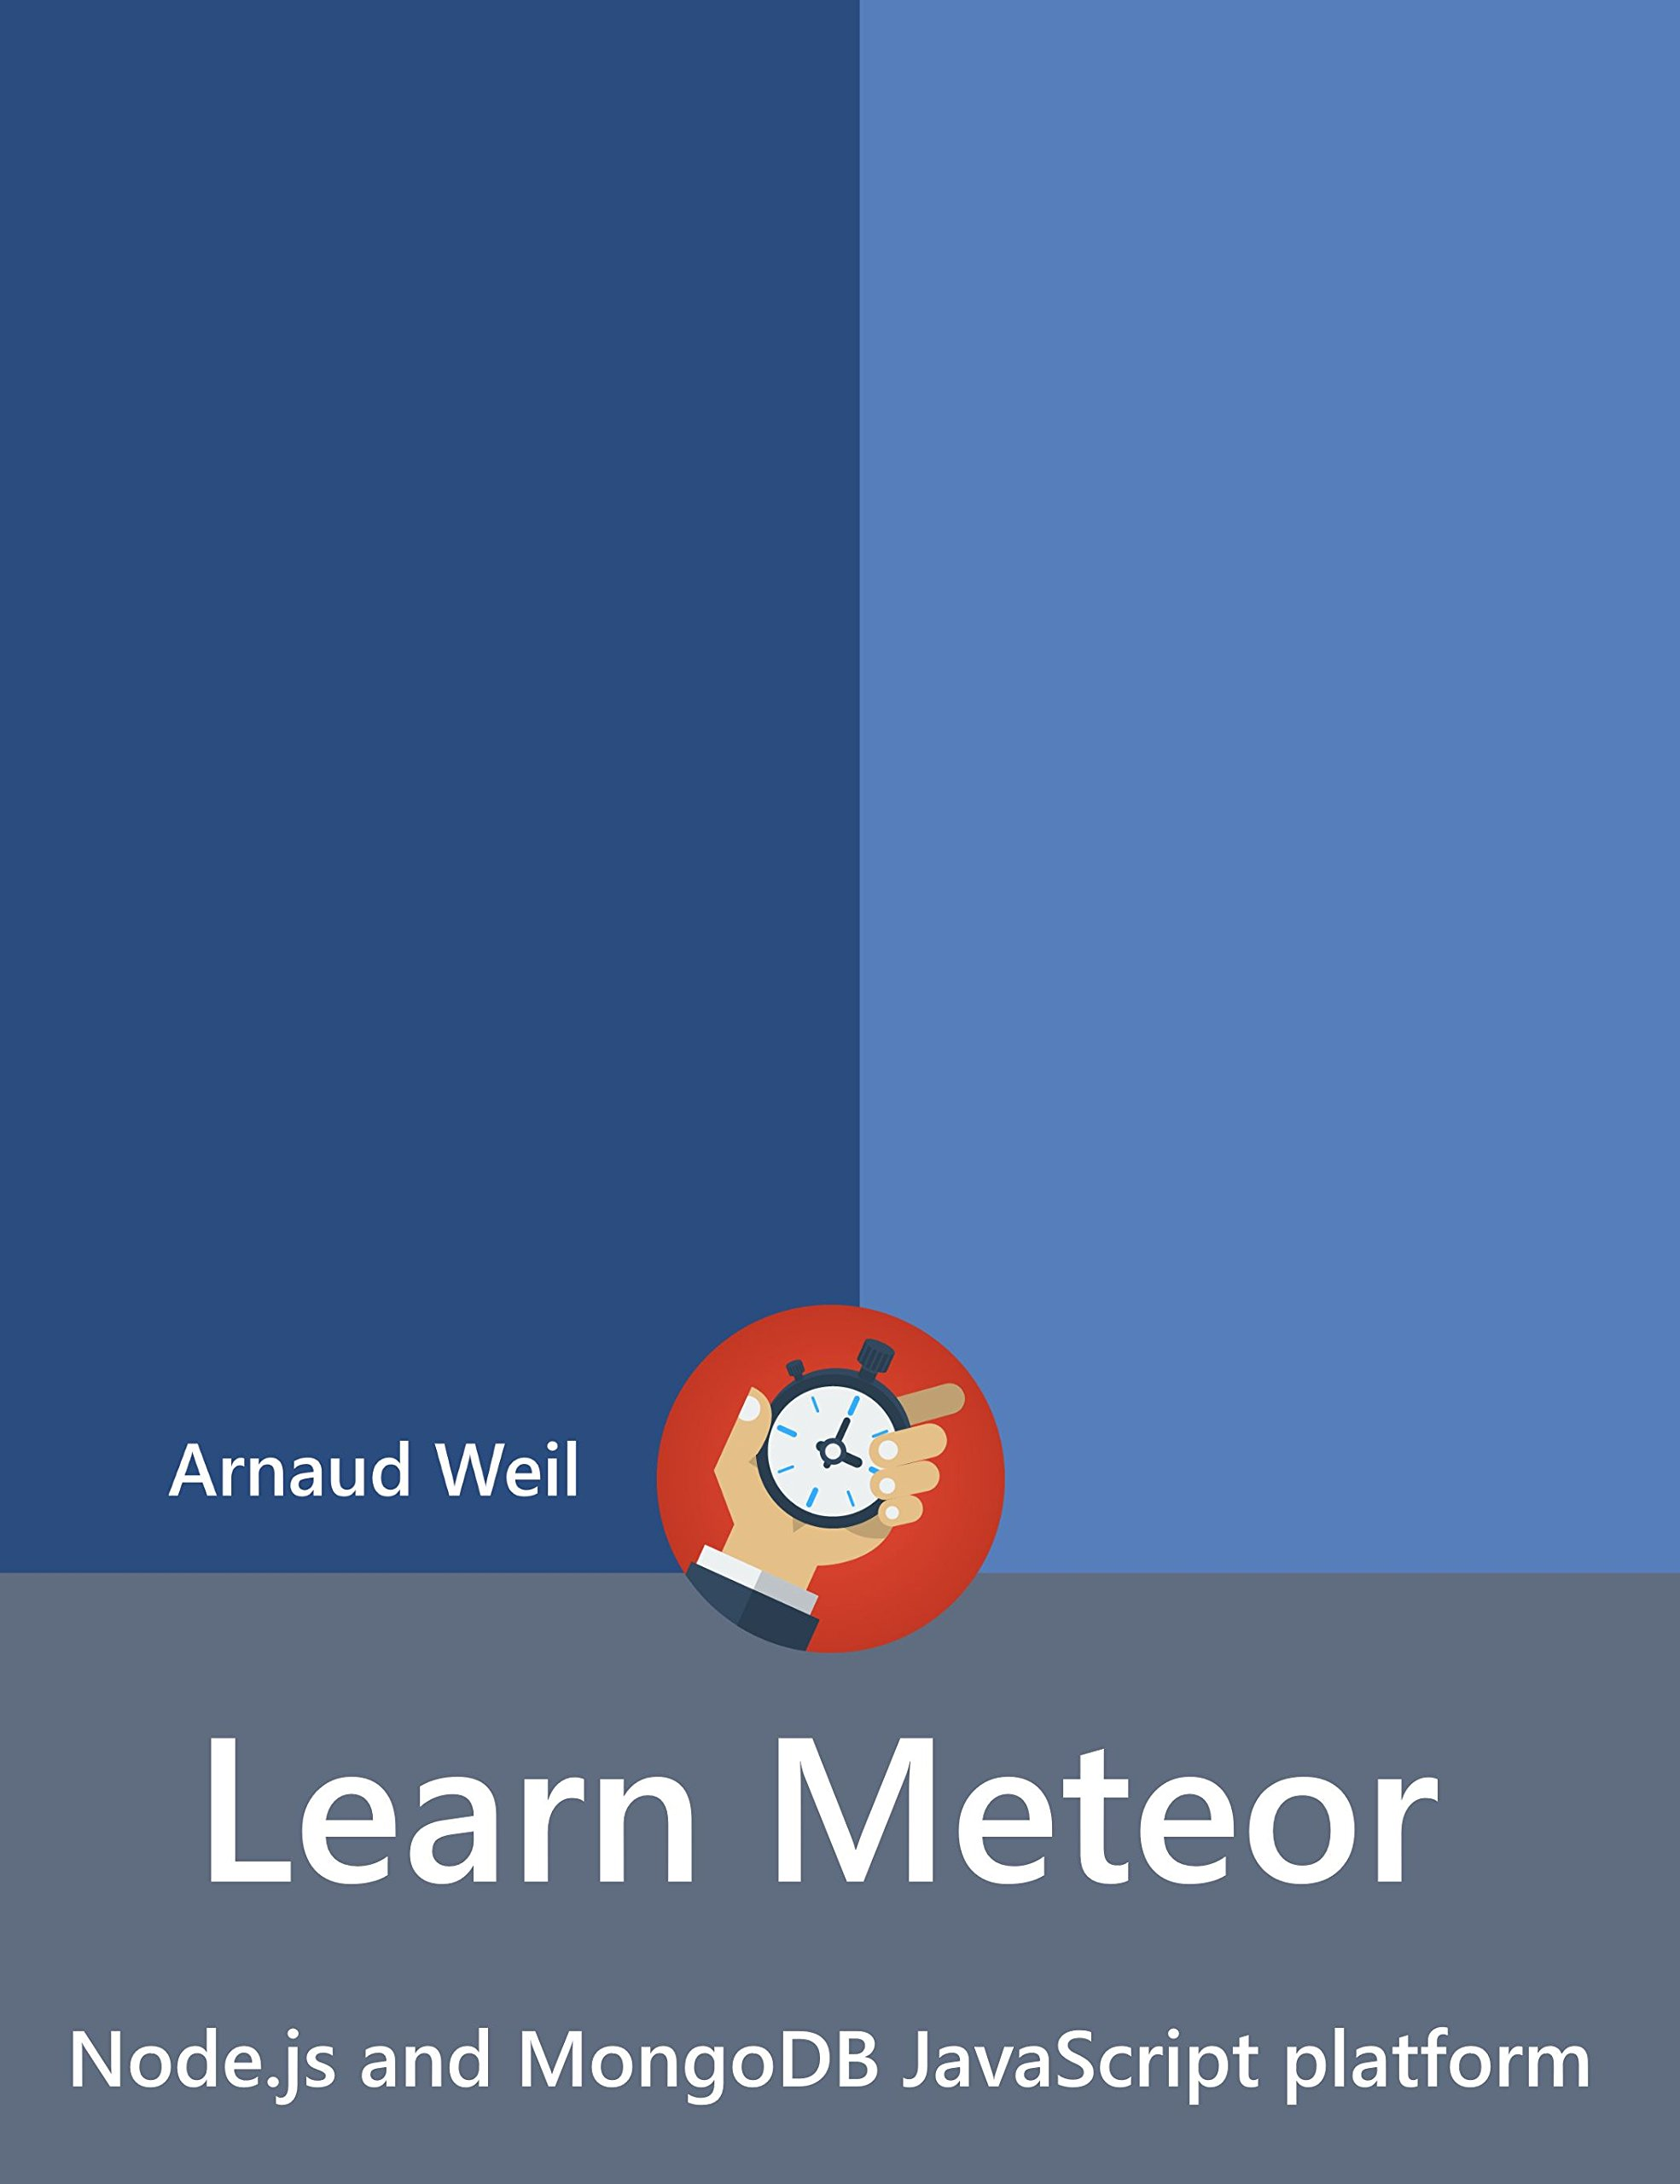 Learn Meteor - Node.js and MongoDB JavaScript platform: Be ready for coding away next week using Meteor